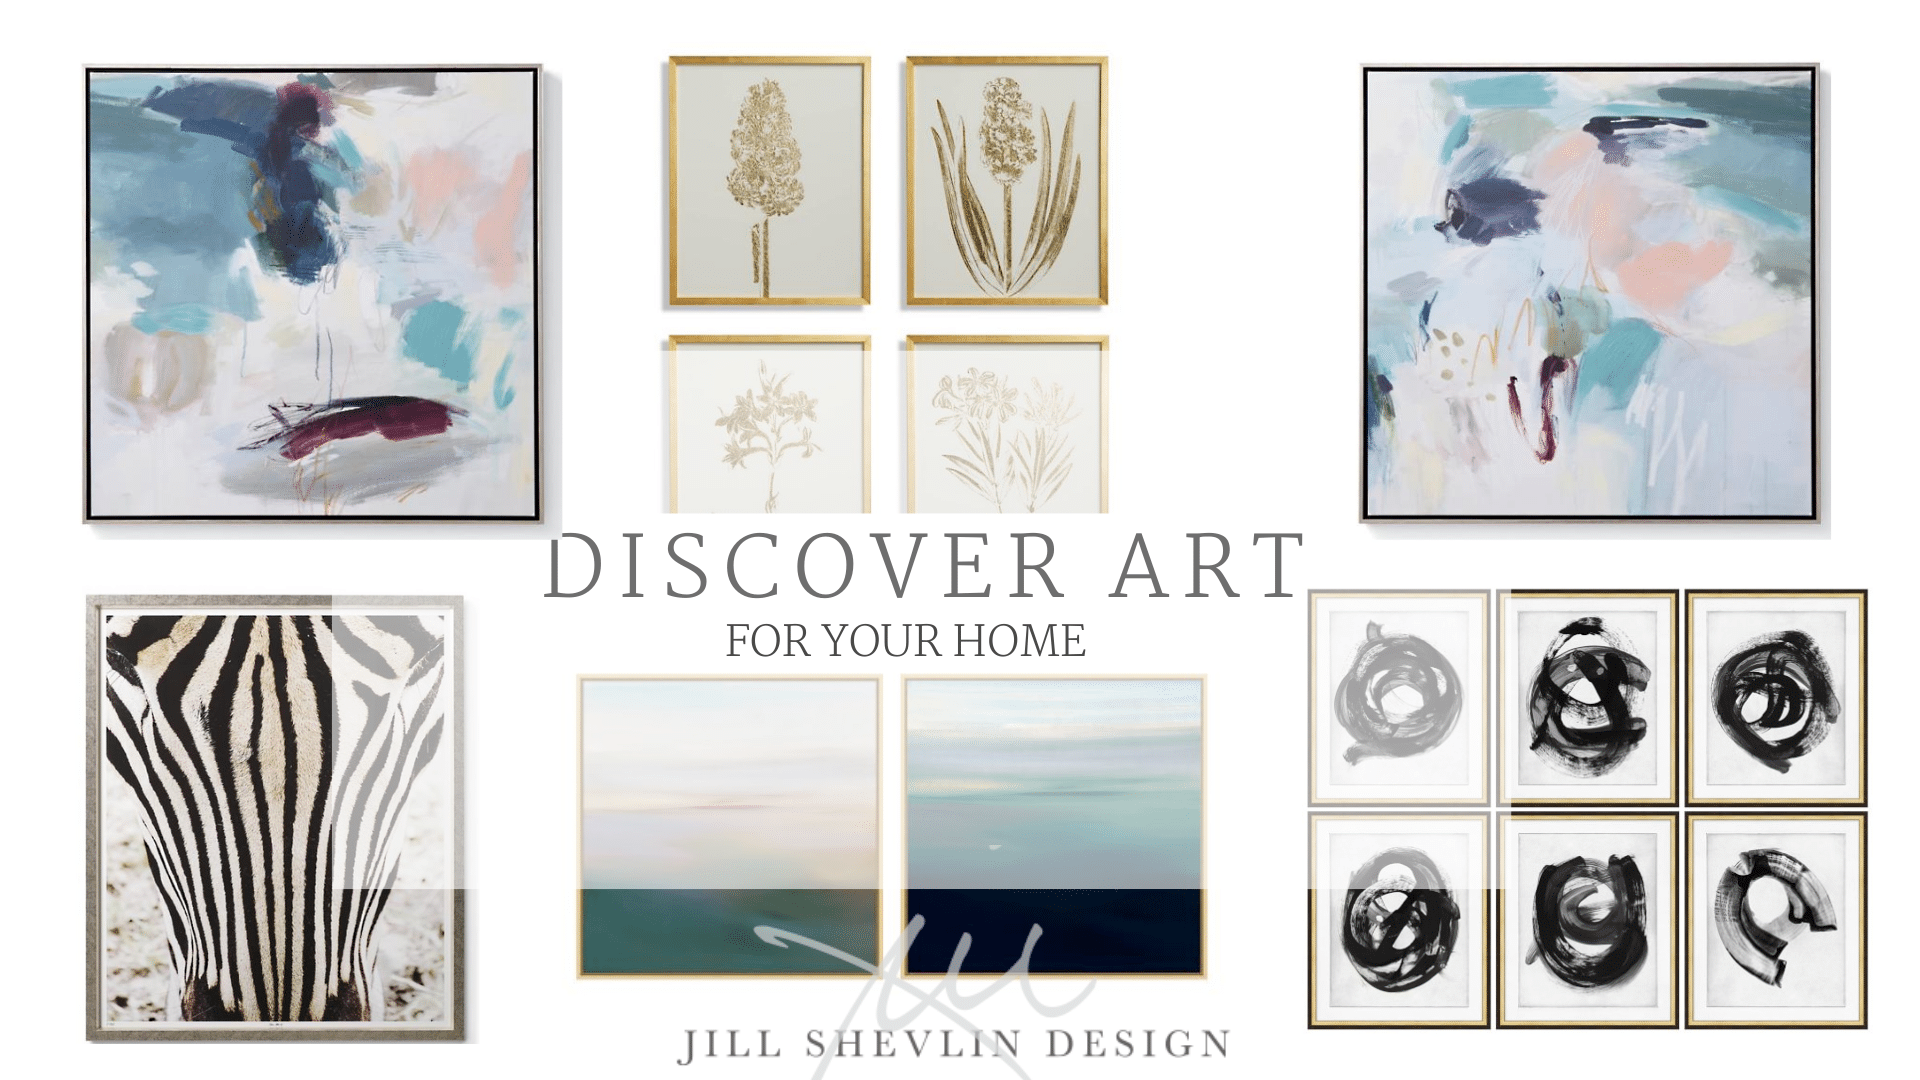 Discover Art Vero beach inteiror designer Jill Shevlin Design Coastal Home